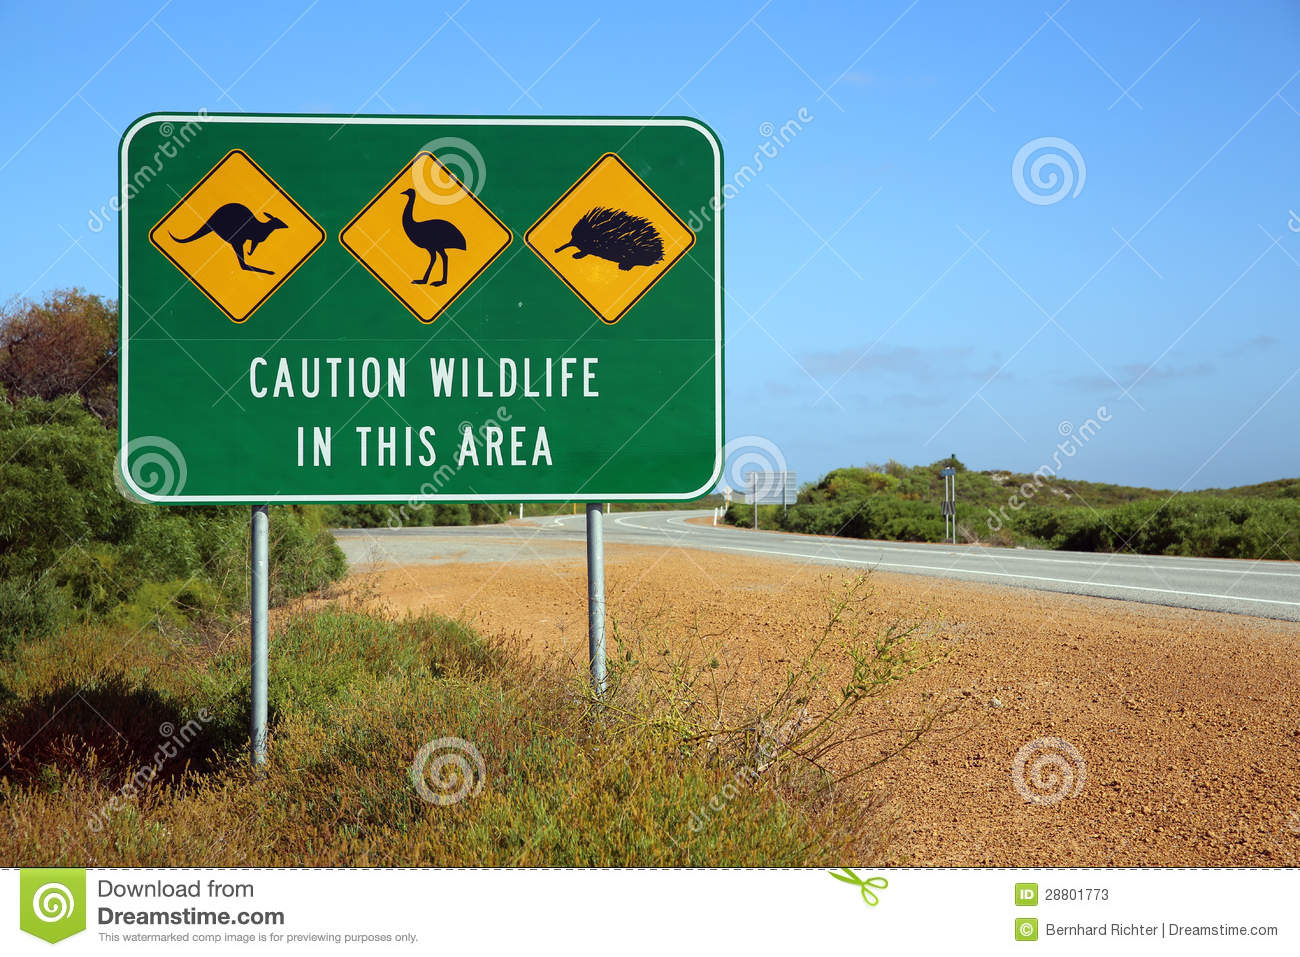 Australian Road Sign Stock Photos - Image: 28801773